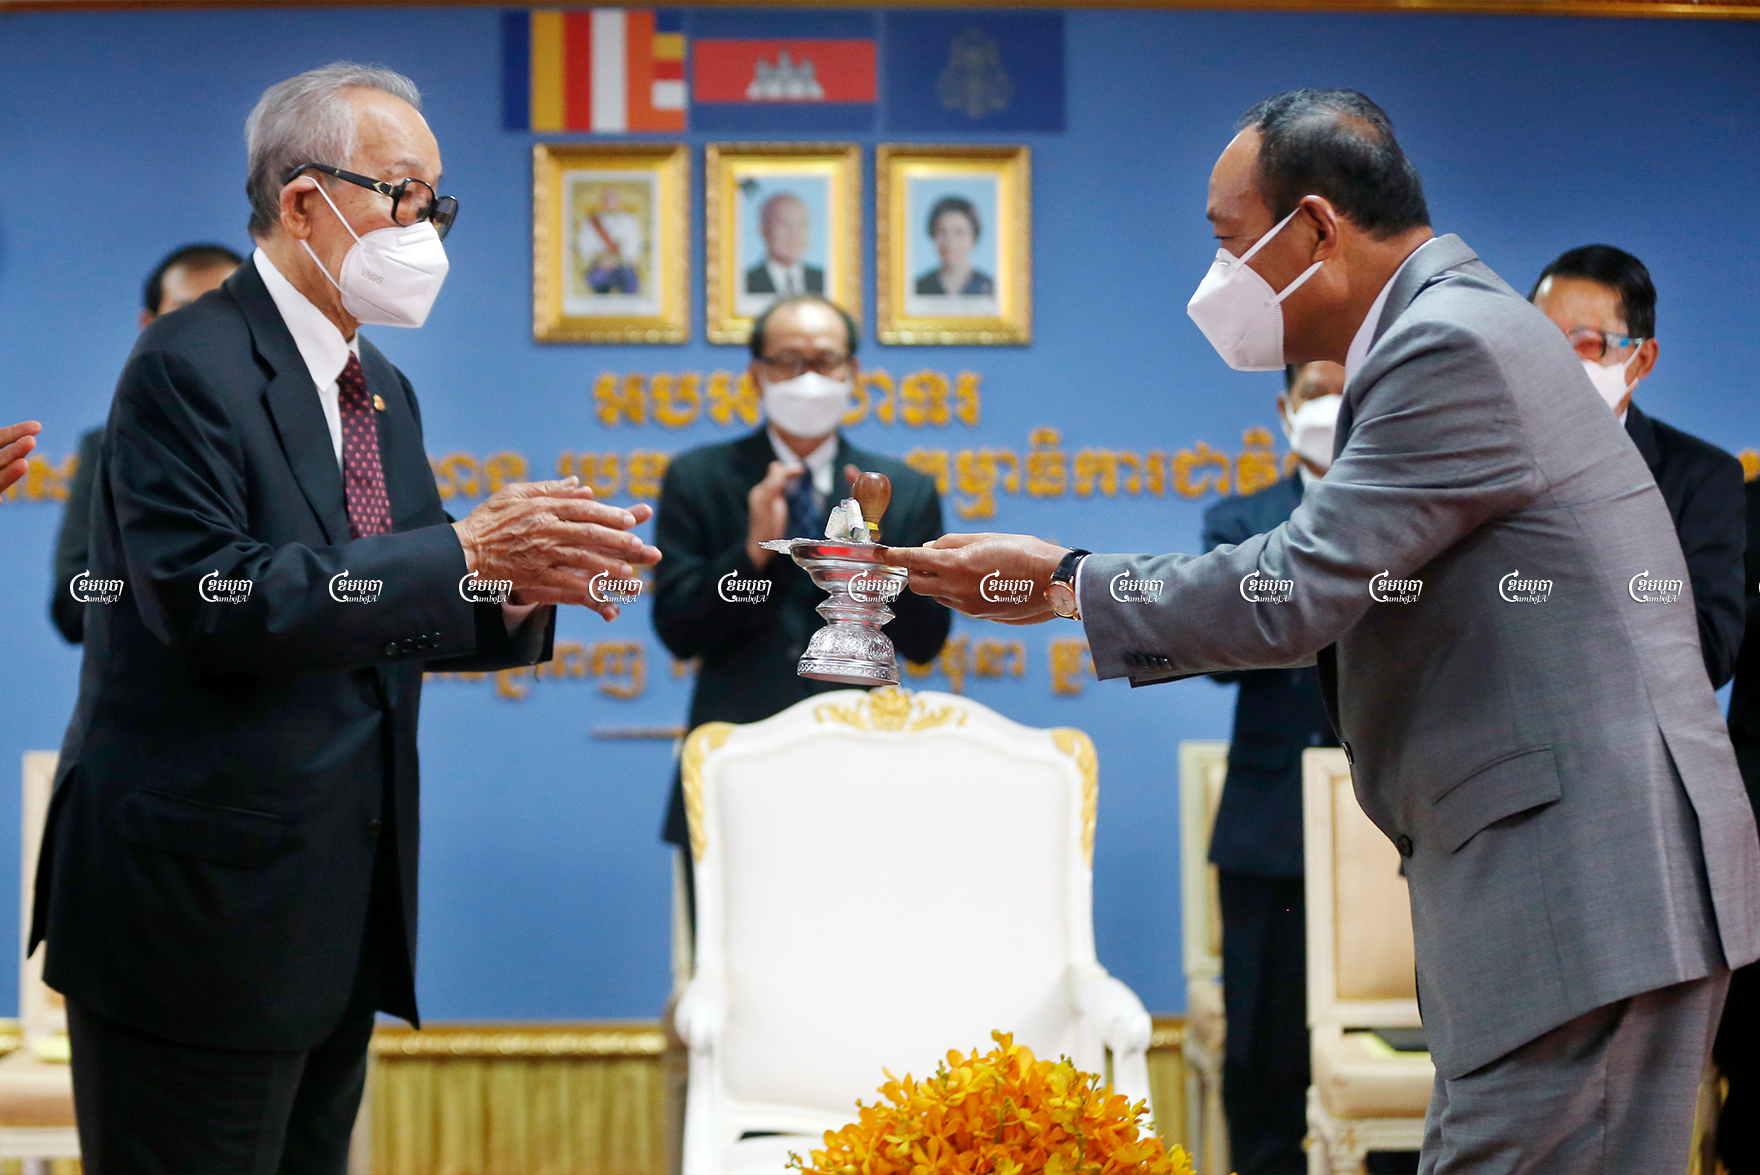 Prach Chan (R), the new chairman of the National Election Committee, receives the NEC seal from Minister of the Royal Palace Kong Sam Ol at a ceremony in Phnom Penh, June 30, 2021.CamboJA/ Panha Chhorpoan